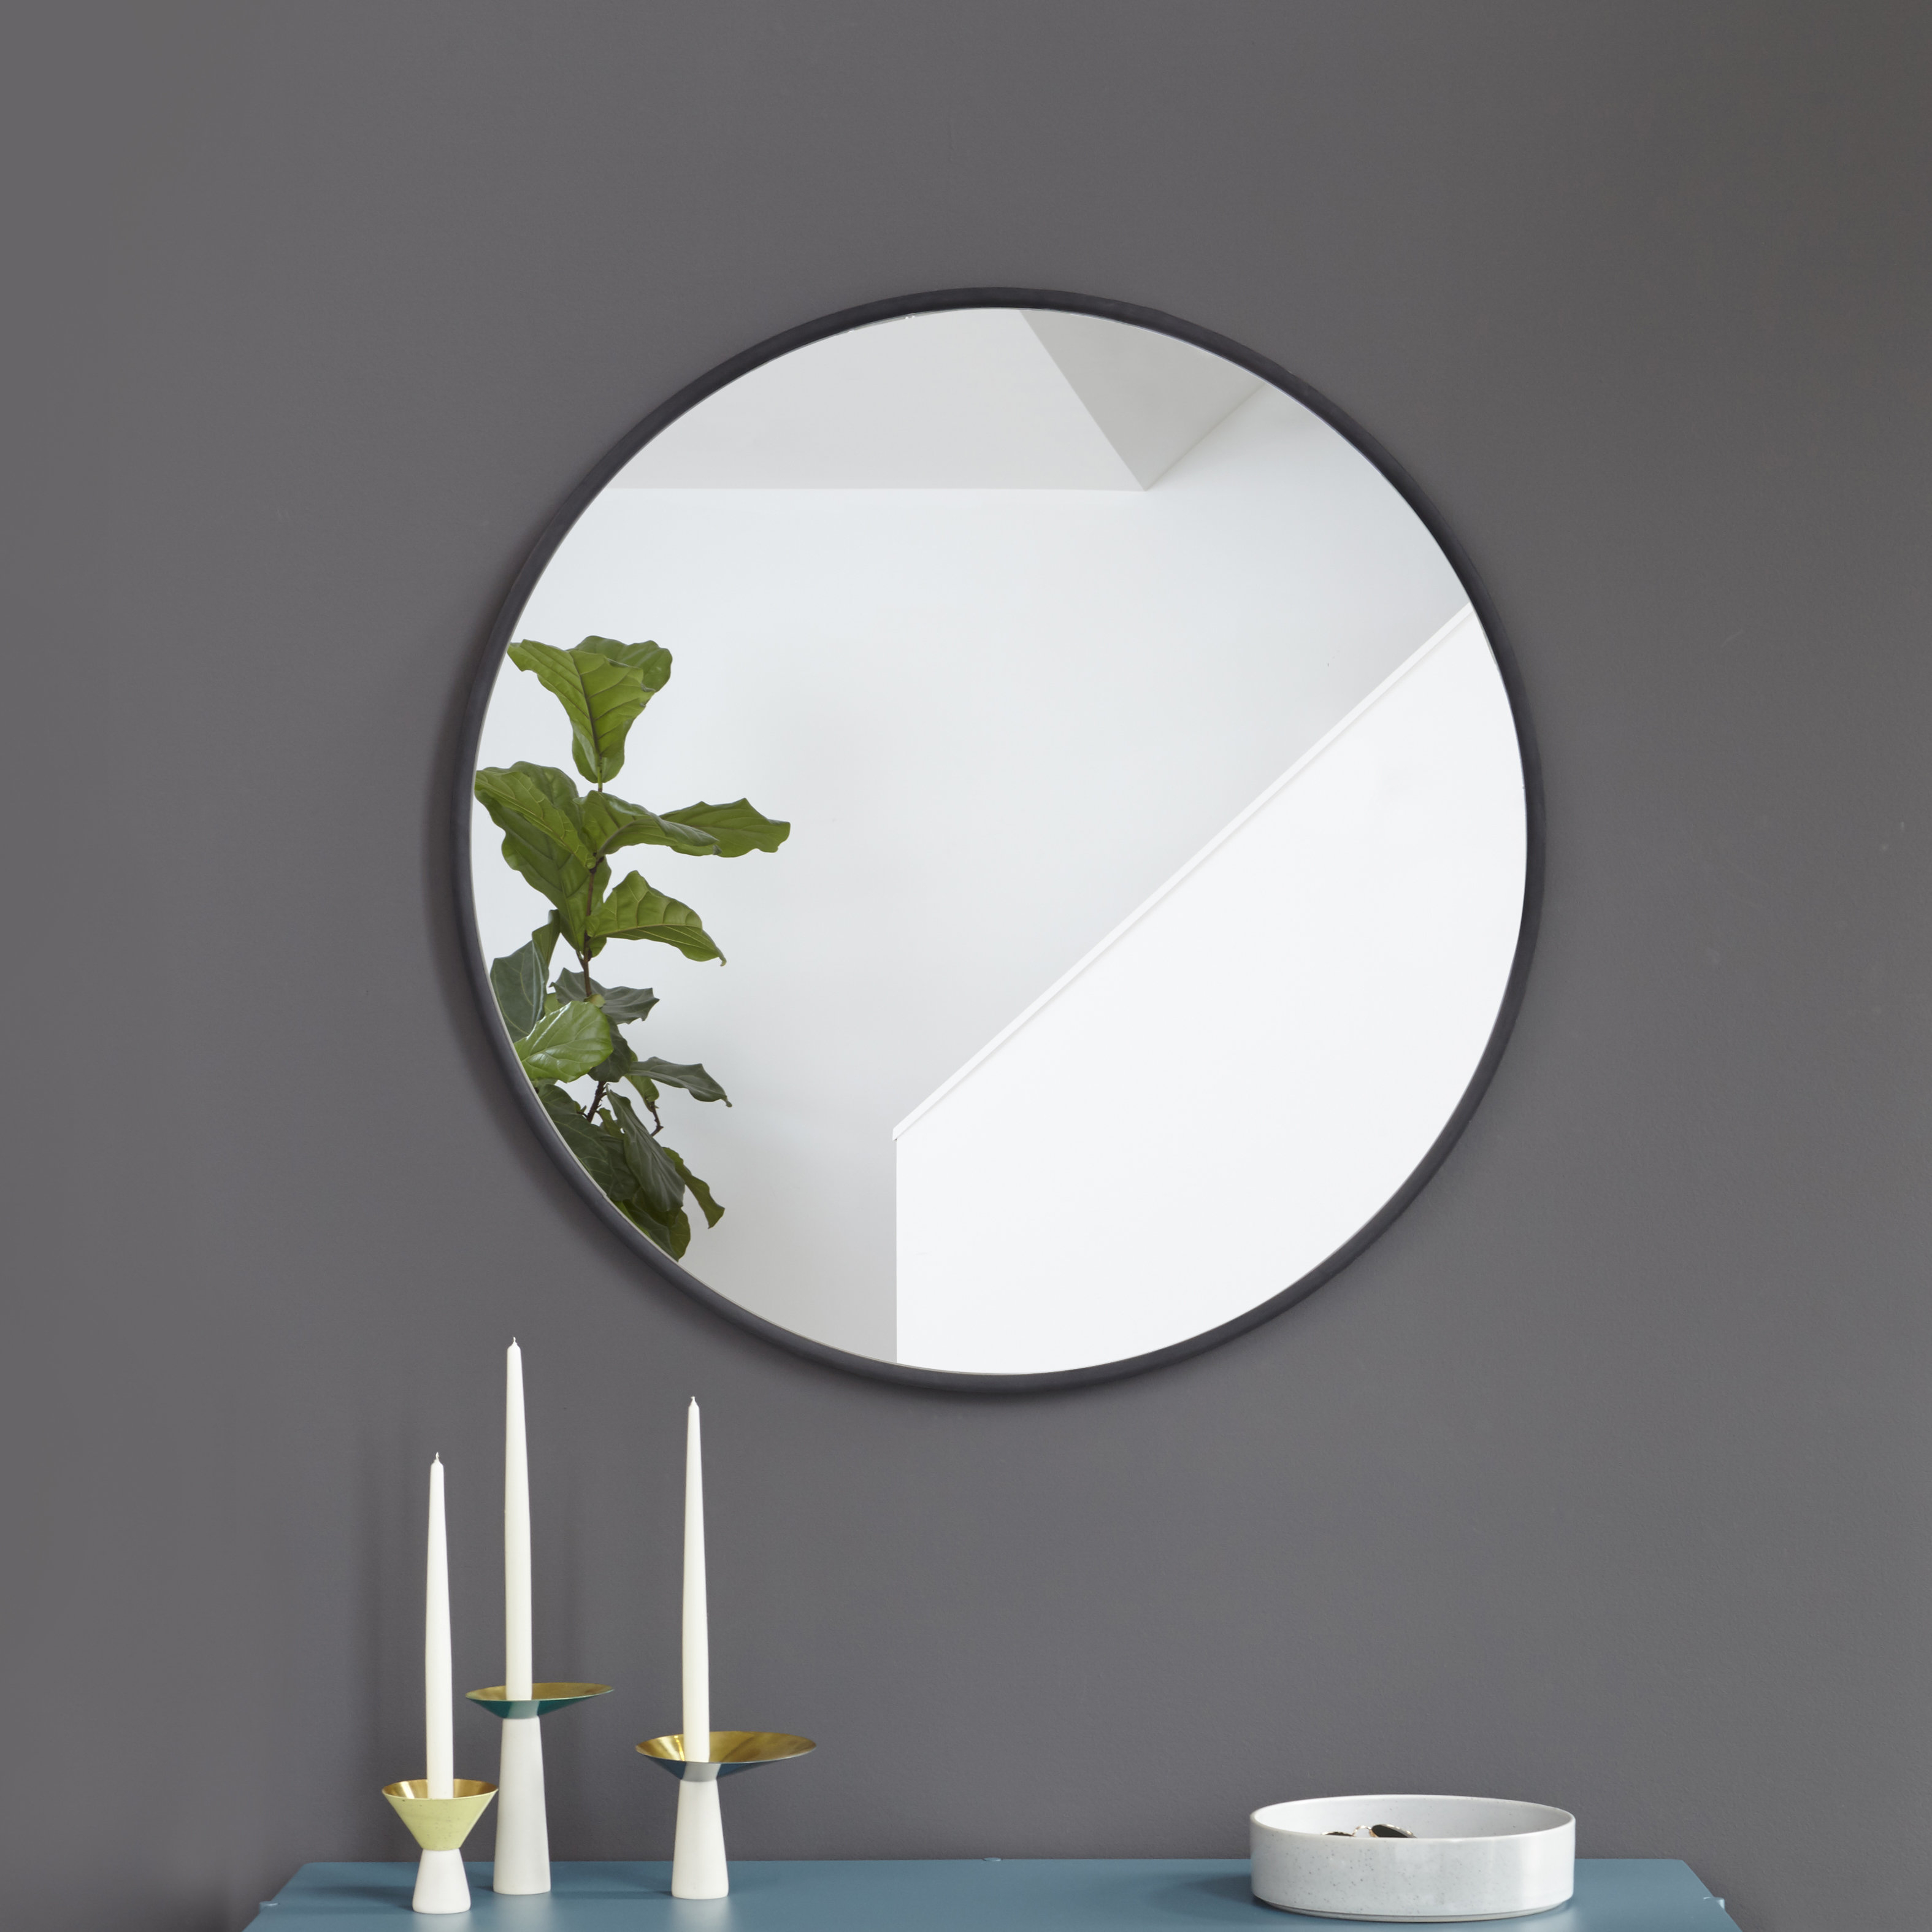 Hub Modern And Contemporary Accent Mirror Regarding Hub Modern And Contemporary Accent Mirrors (View 12 of 30)